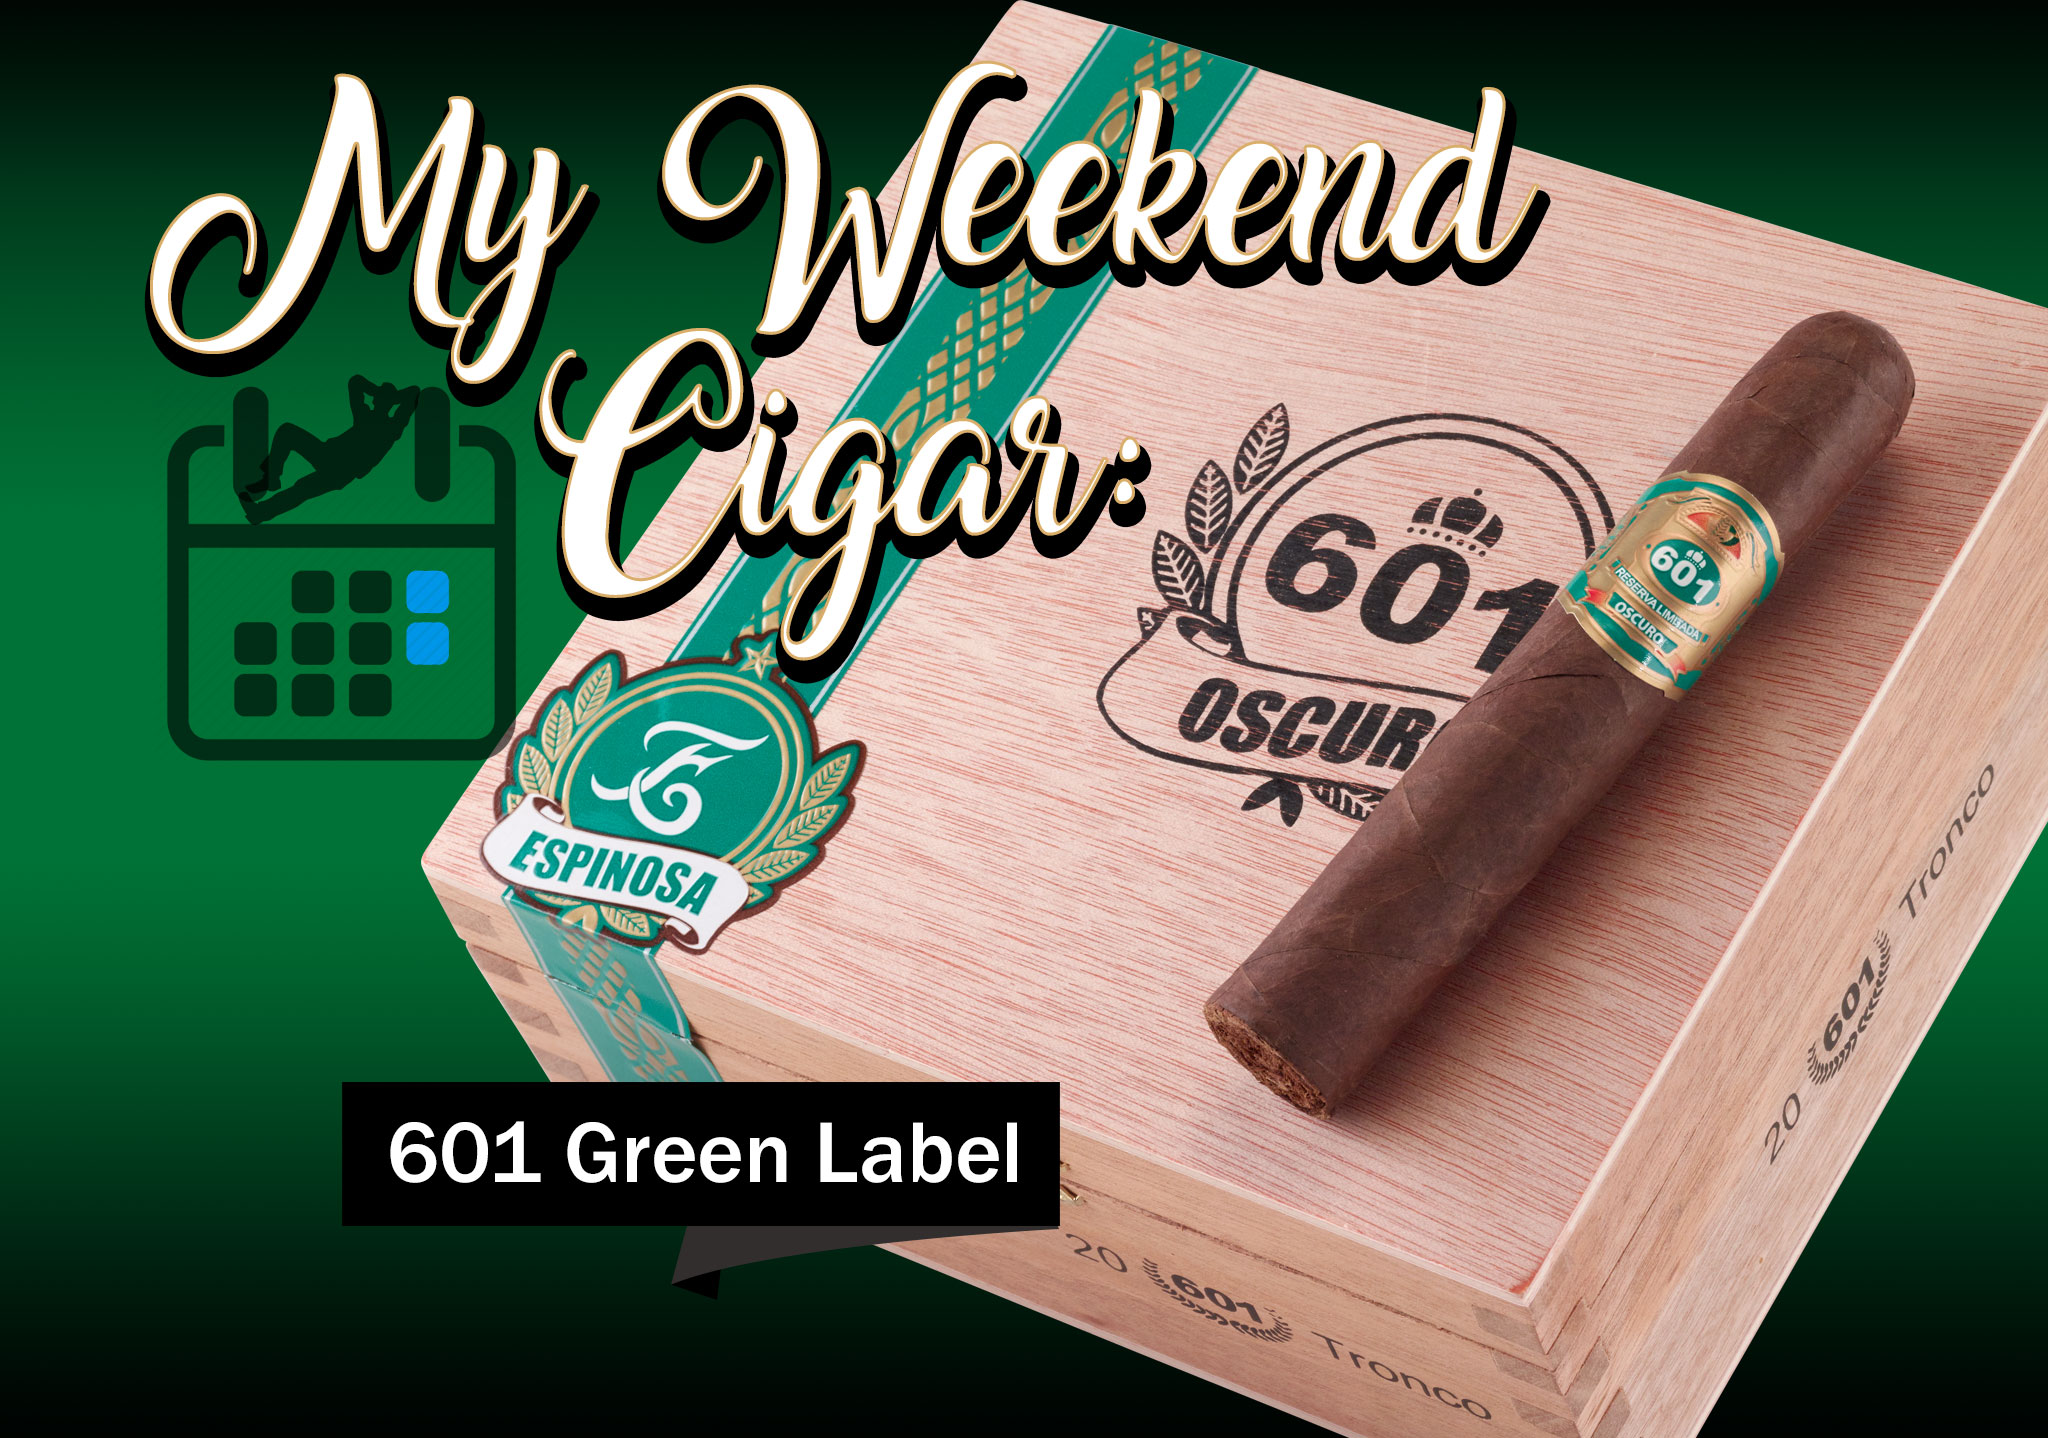 My Weekend Cigar: Apr. 9, 2018 – 601 Green Label Oscuro Tronco